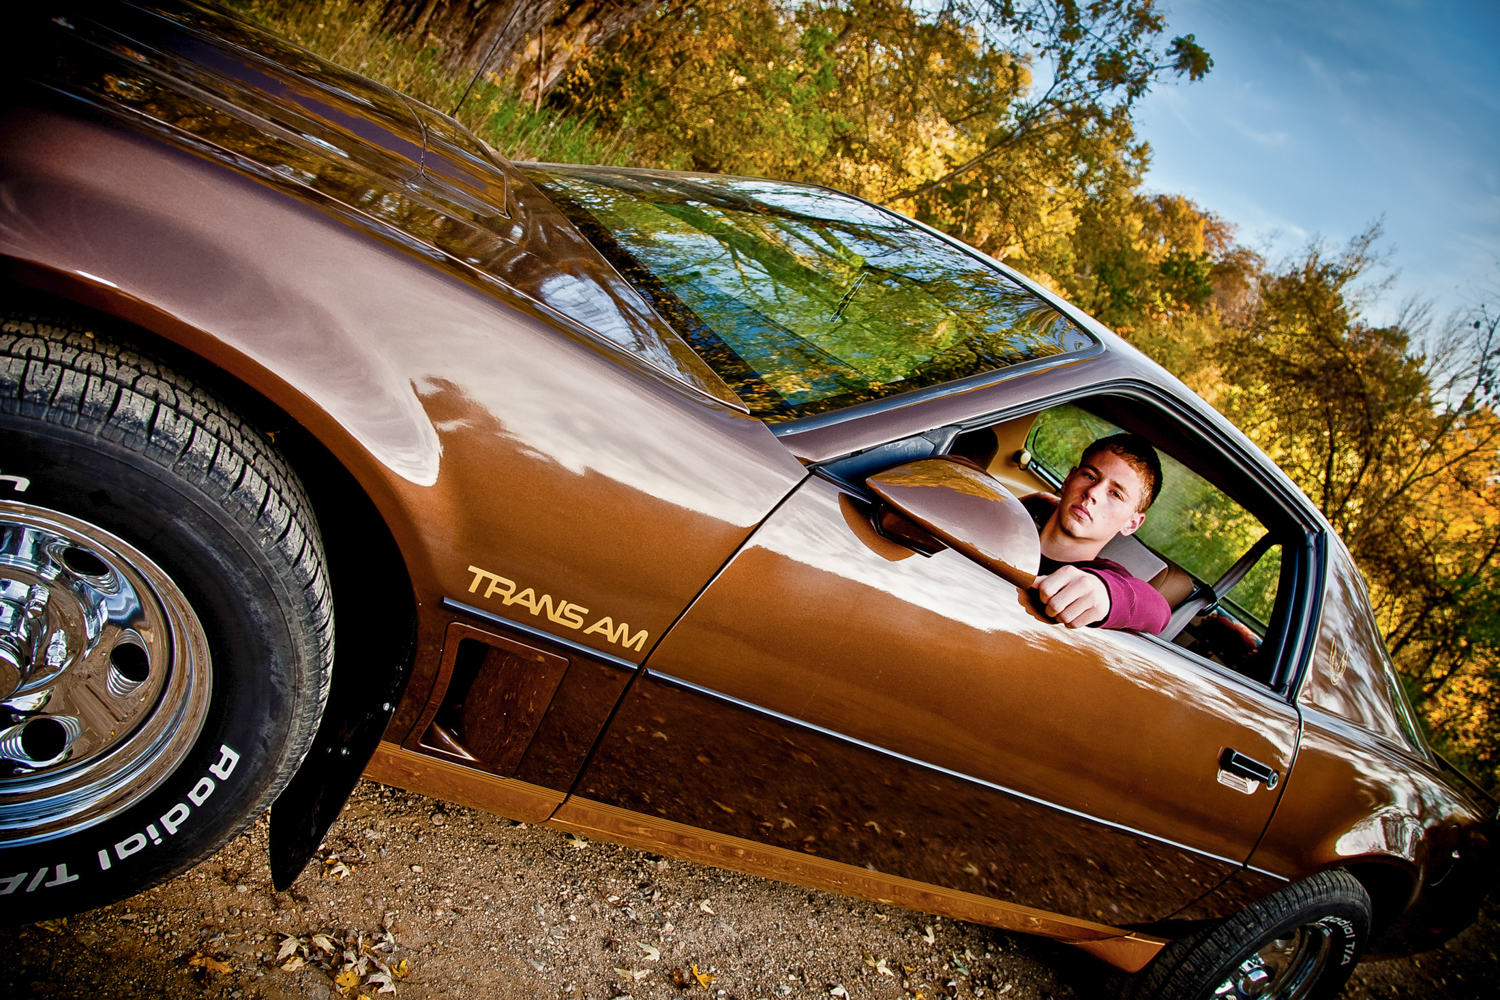 Portrait-HIgh-School-Seniors-young-man-in-car-trans-am-010.jpg